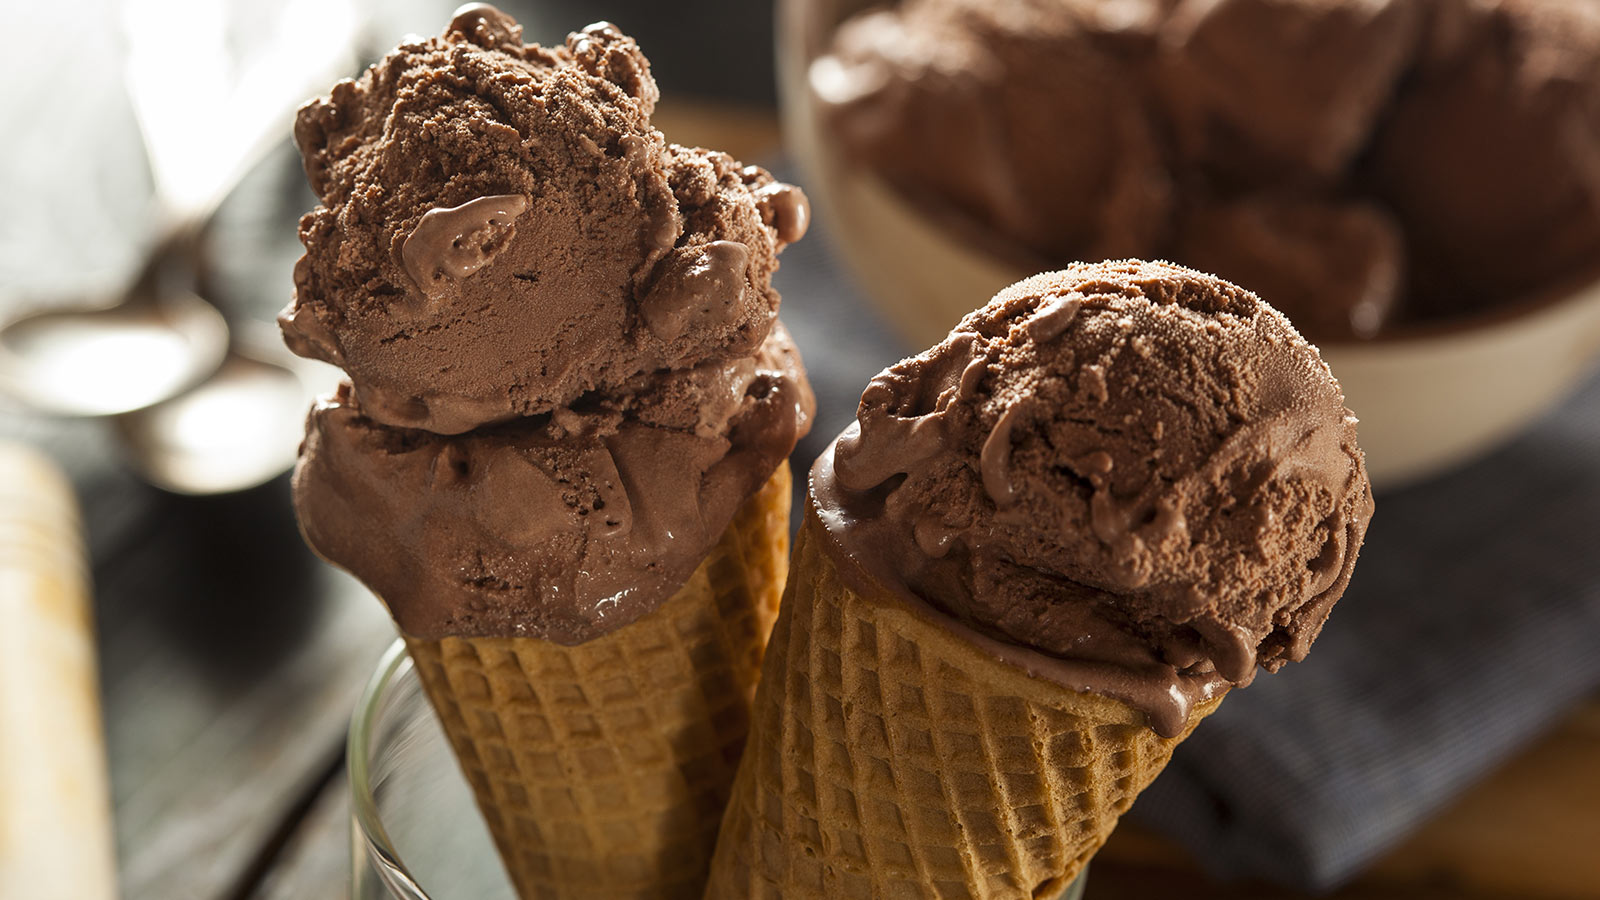 Two large chocolate ice cream cones